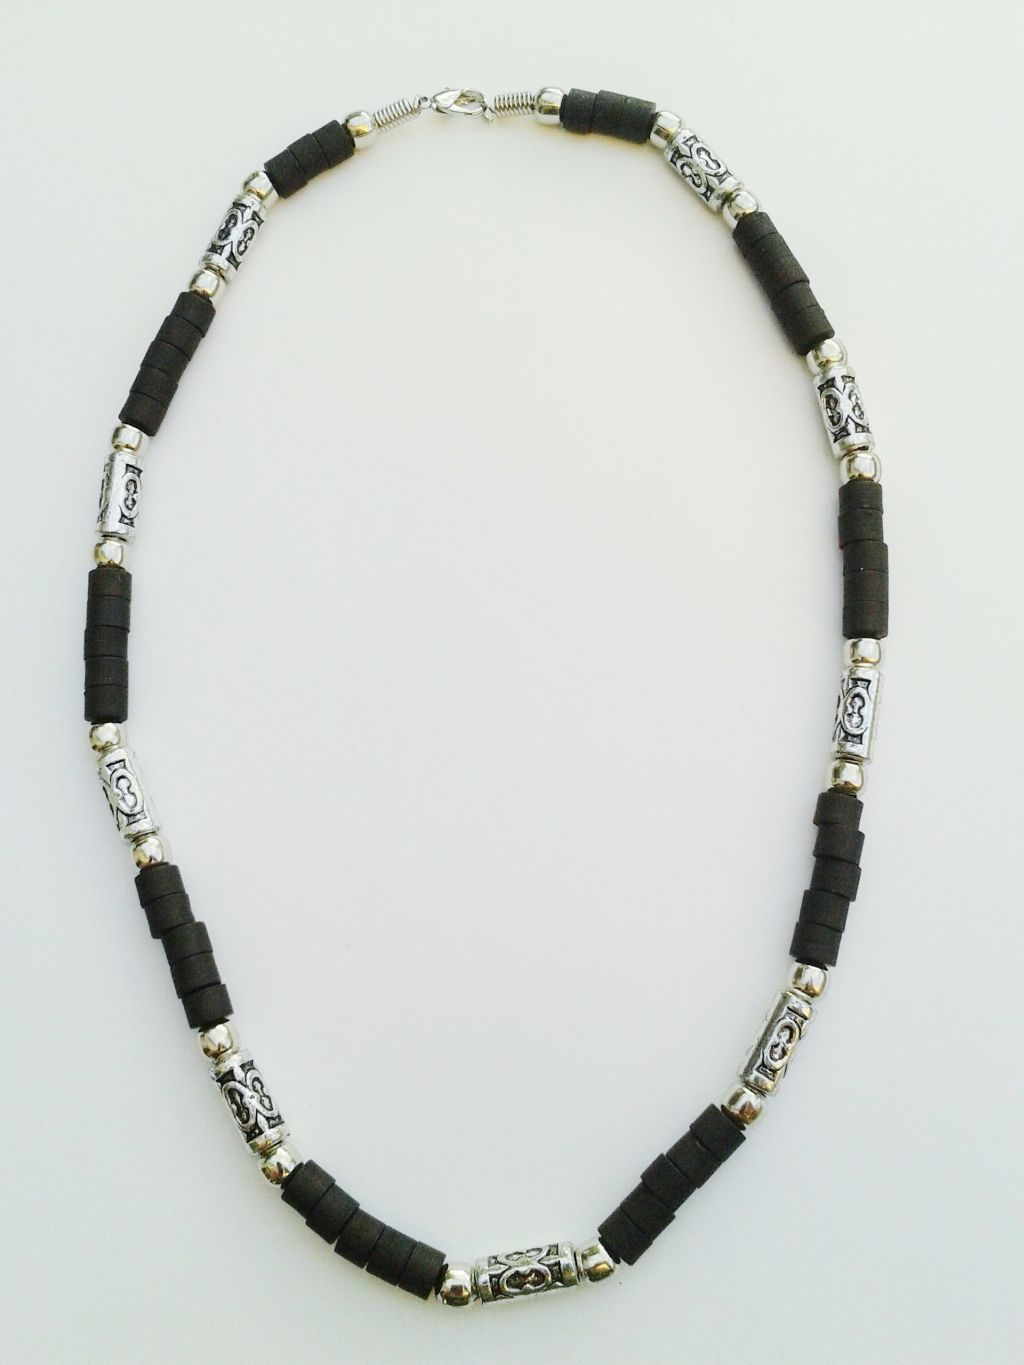 Jamaica Two-Tone Chrome/Black Surfer Beaded Choker Necklace, Men's Beach Jewelry